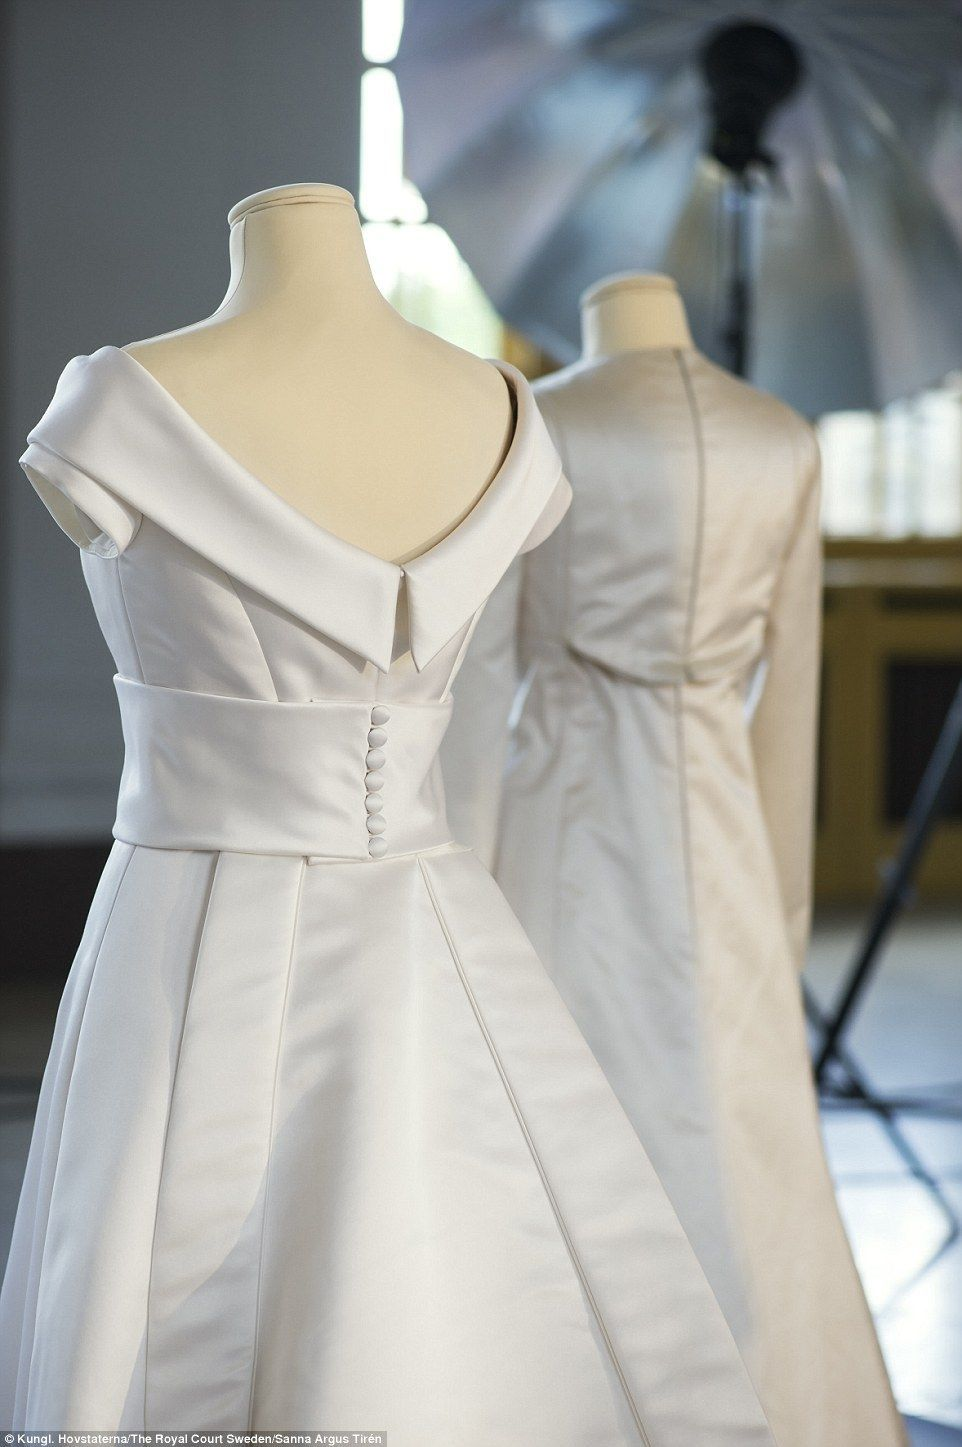 Crown princess victoria 39 s wedding dress designed by for Swedish wedding dress designer